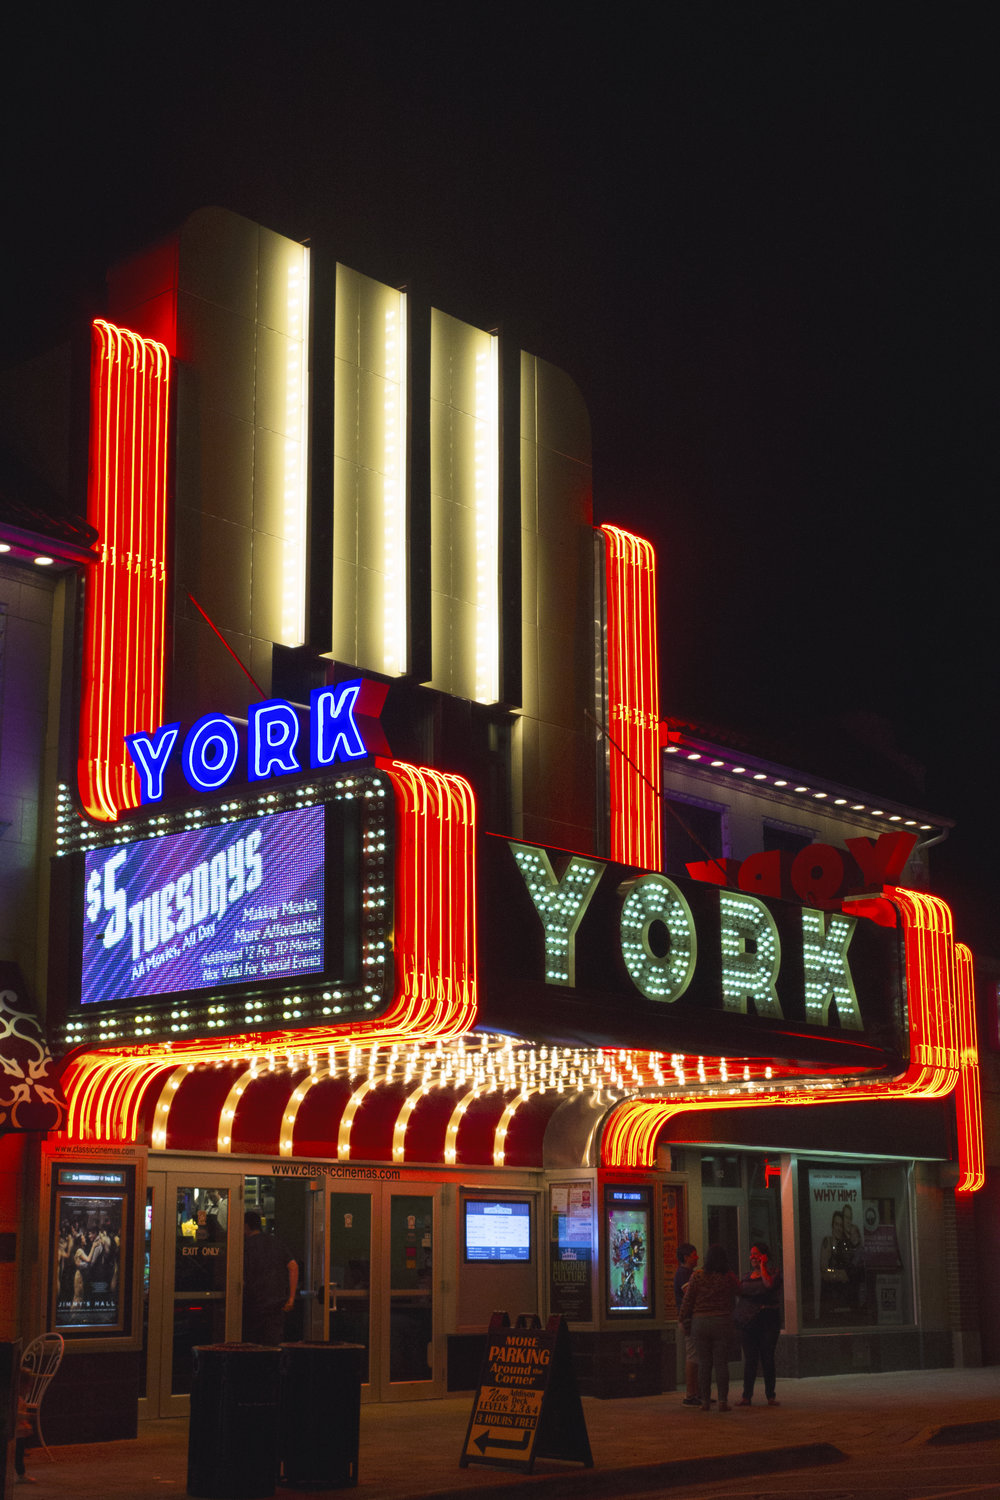 The York Theatre in downtown Elmhurst offers $5 movies all day every Tuesday.  File Photo